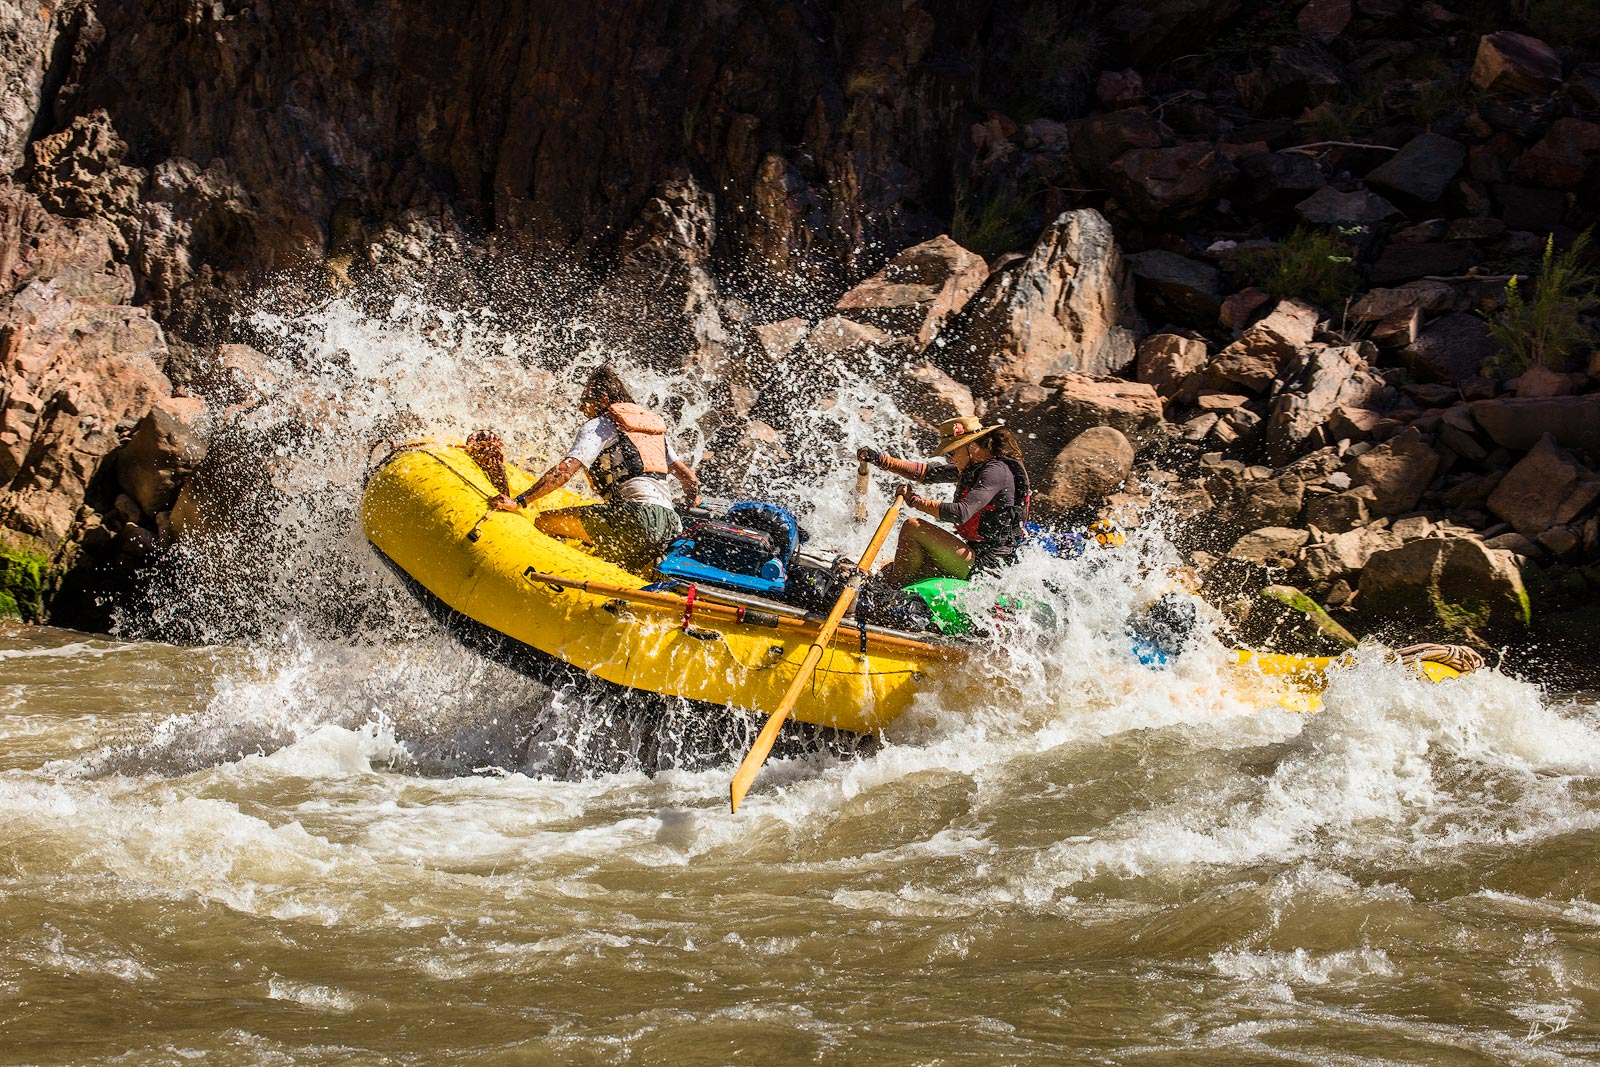 Rafters making the run through Specter Rapids (river mile 130) on the Colorado River. Grand Canyon National Park in Arizona....